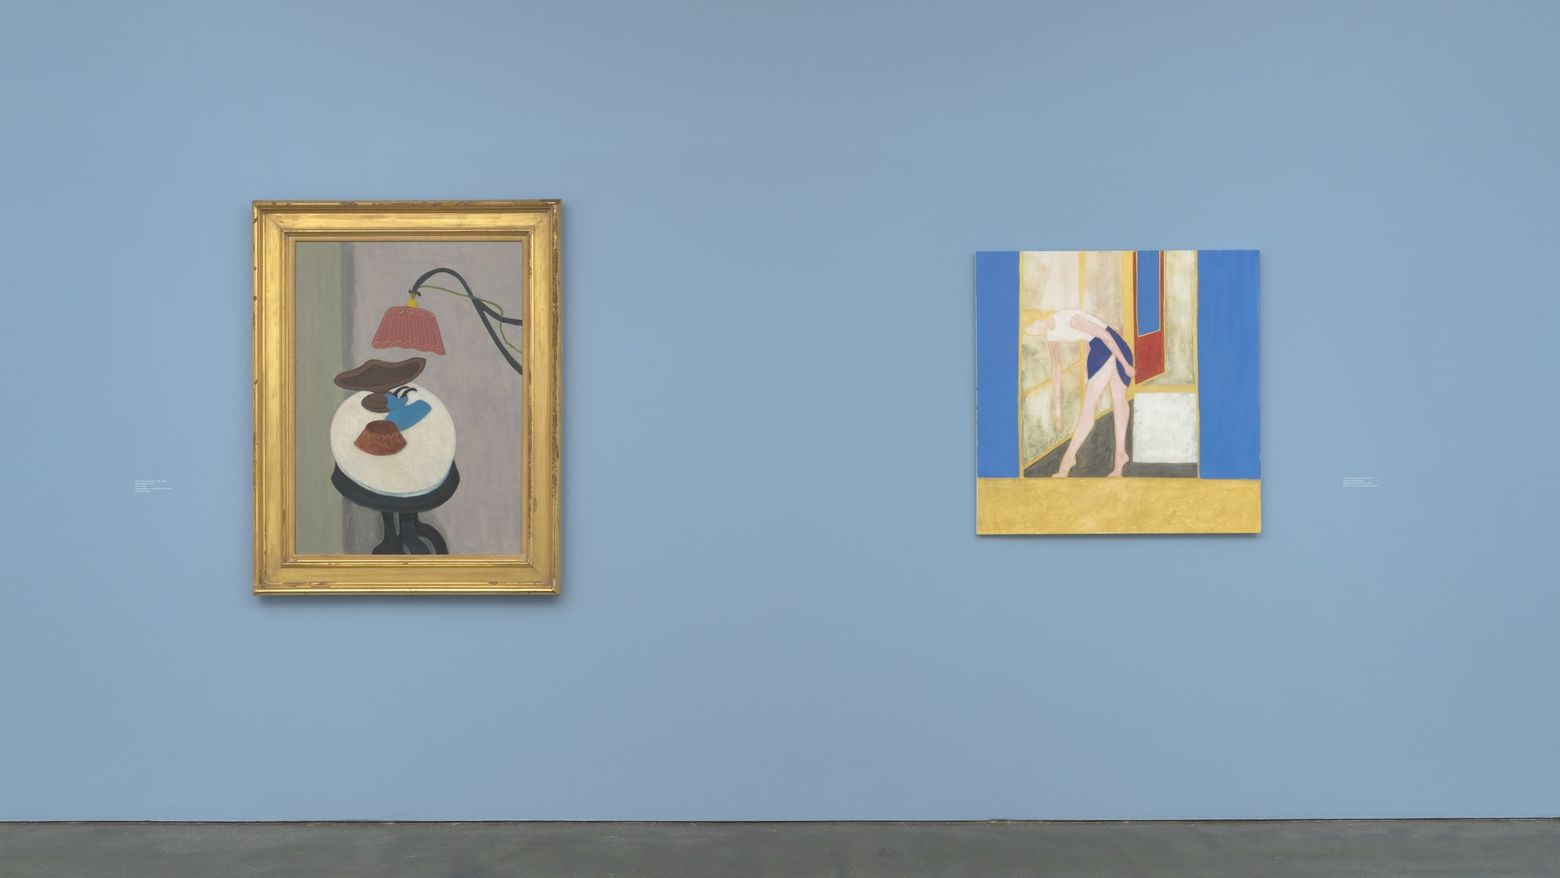 Two paintings hang on a blue gallery wall